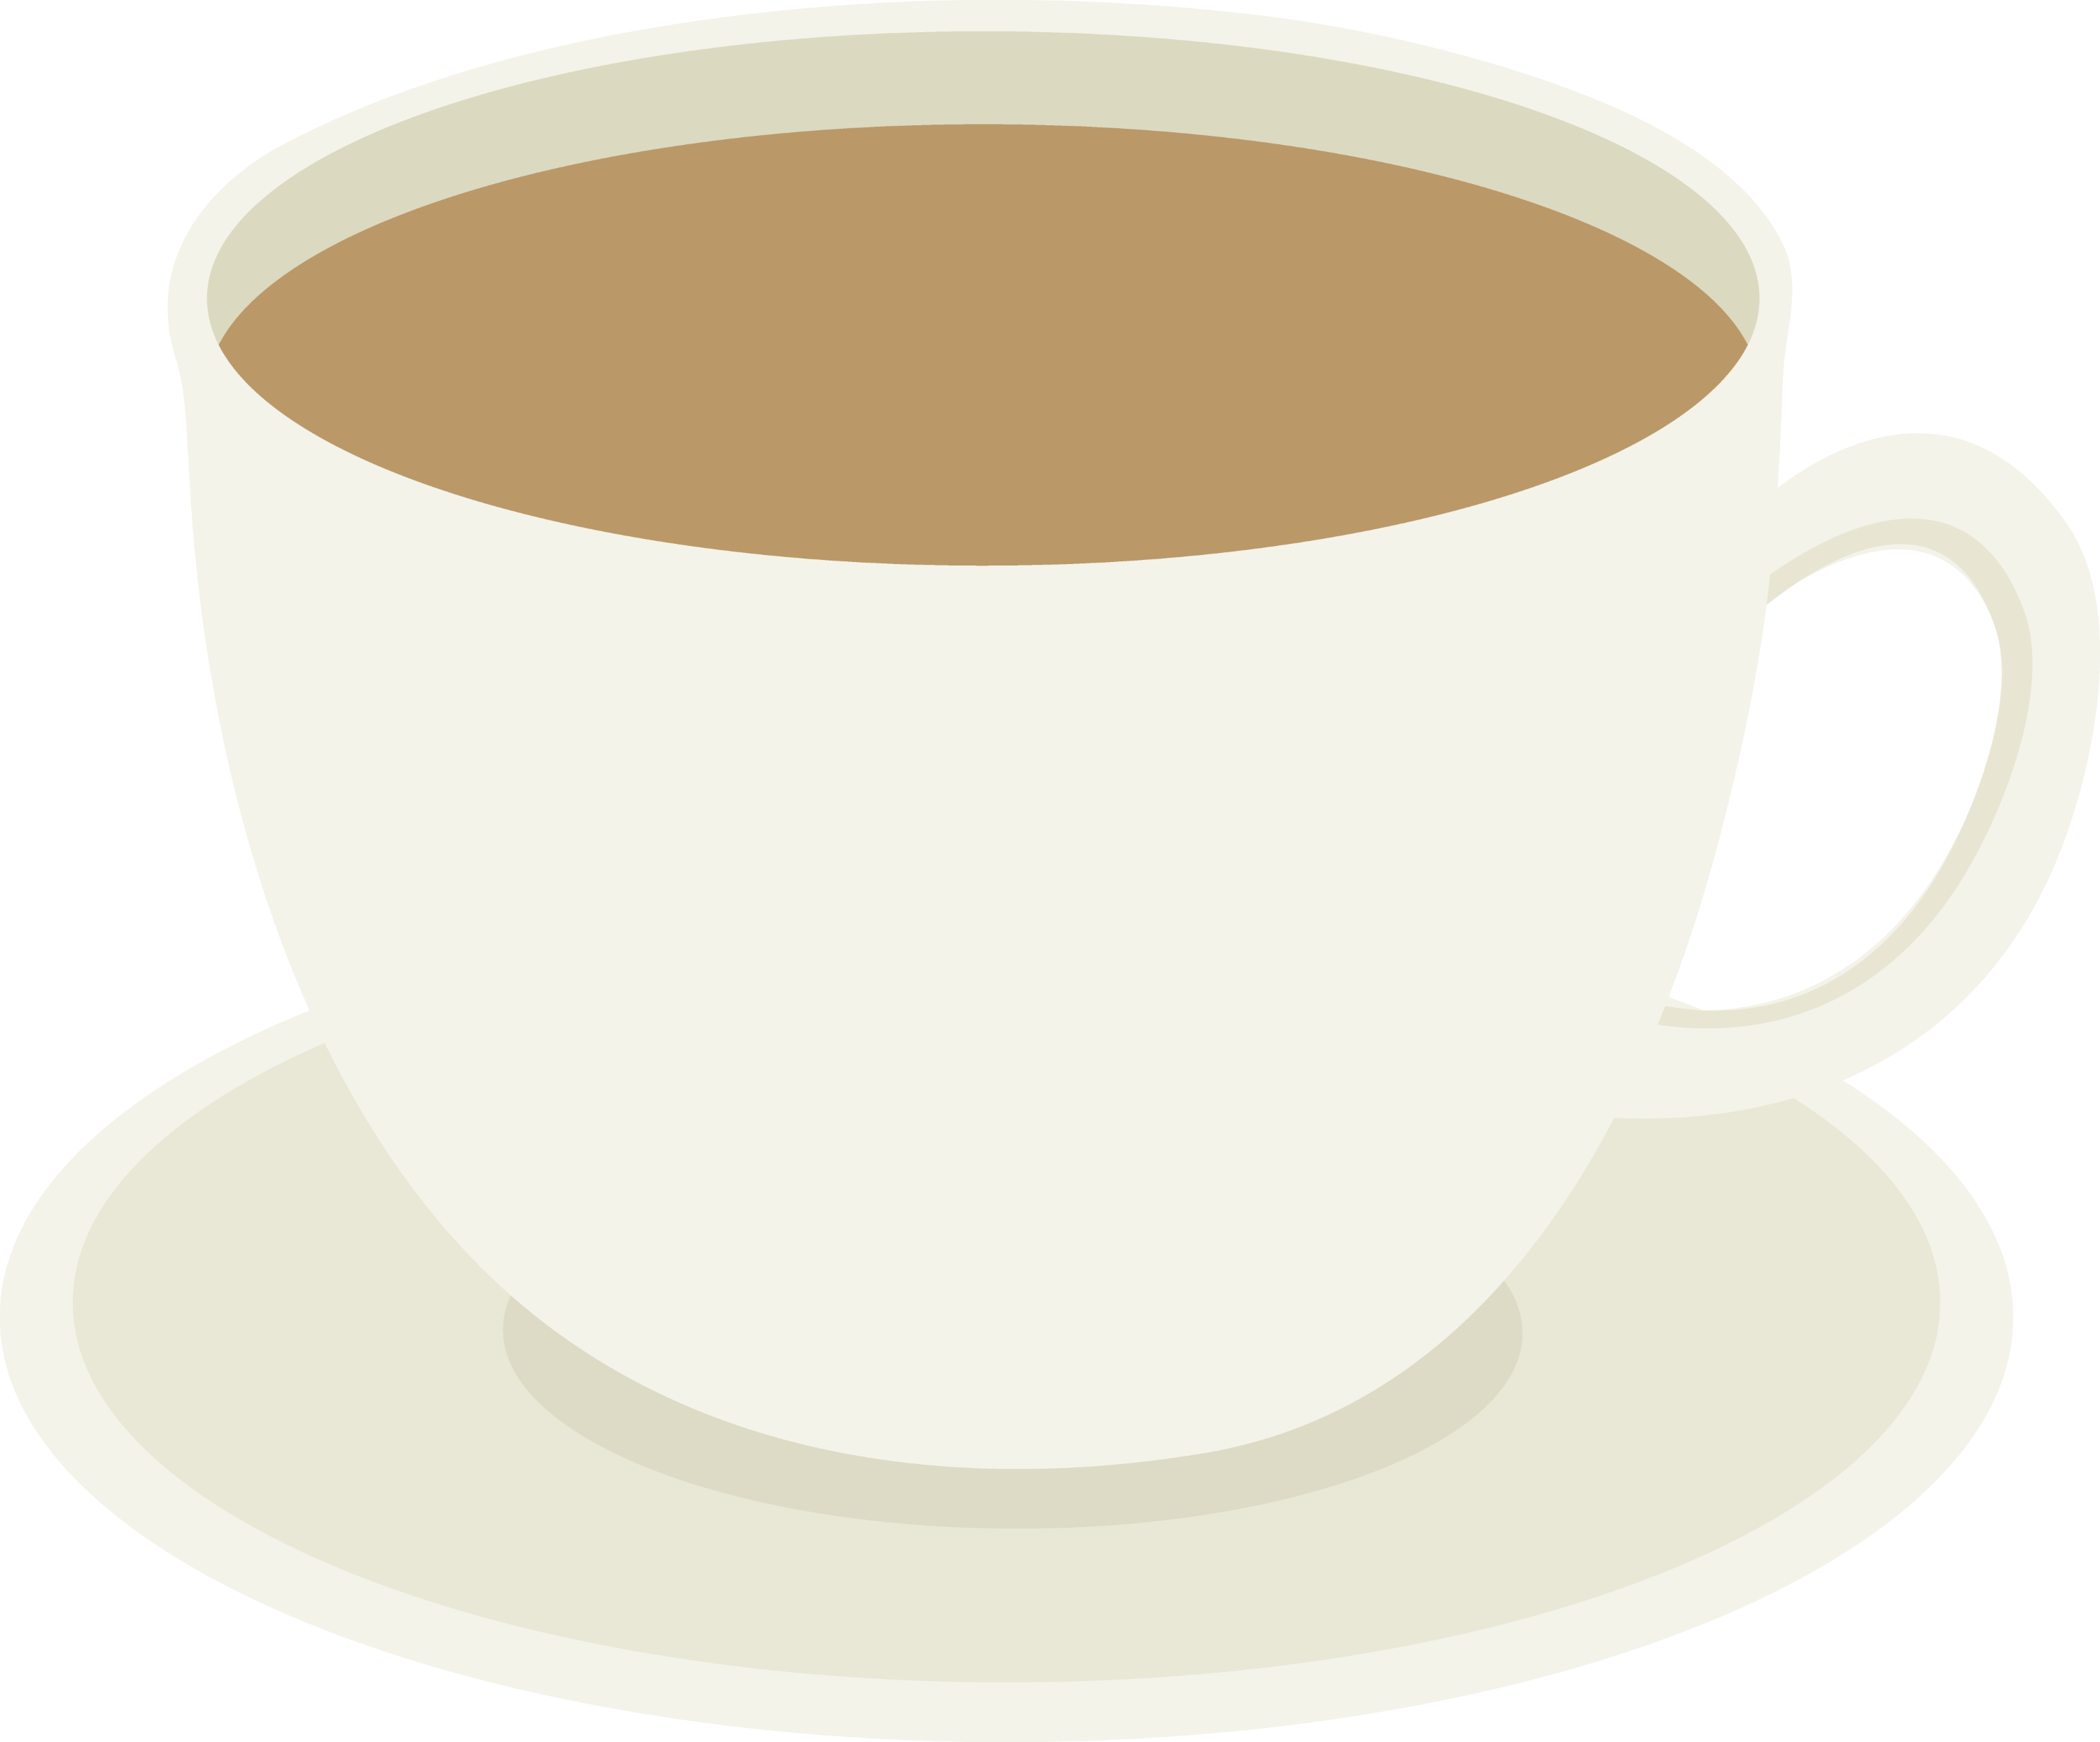 Cup of Coffee on Plate - Free Clip Art